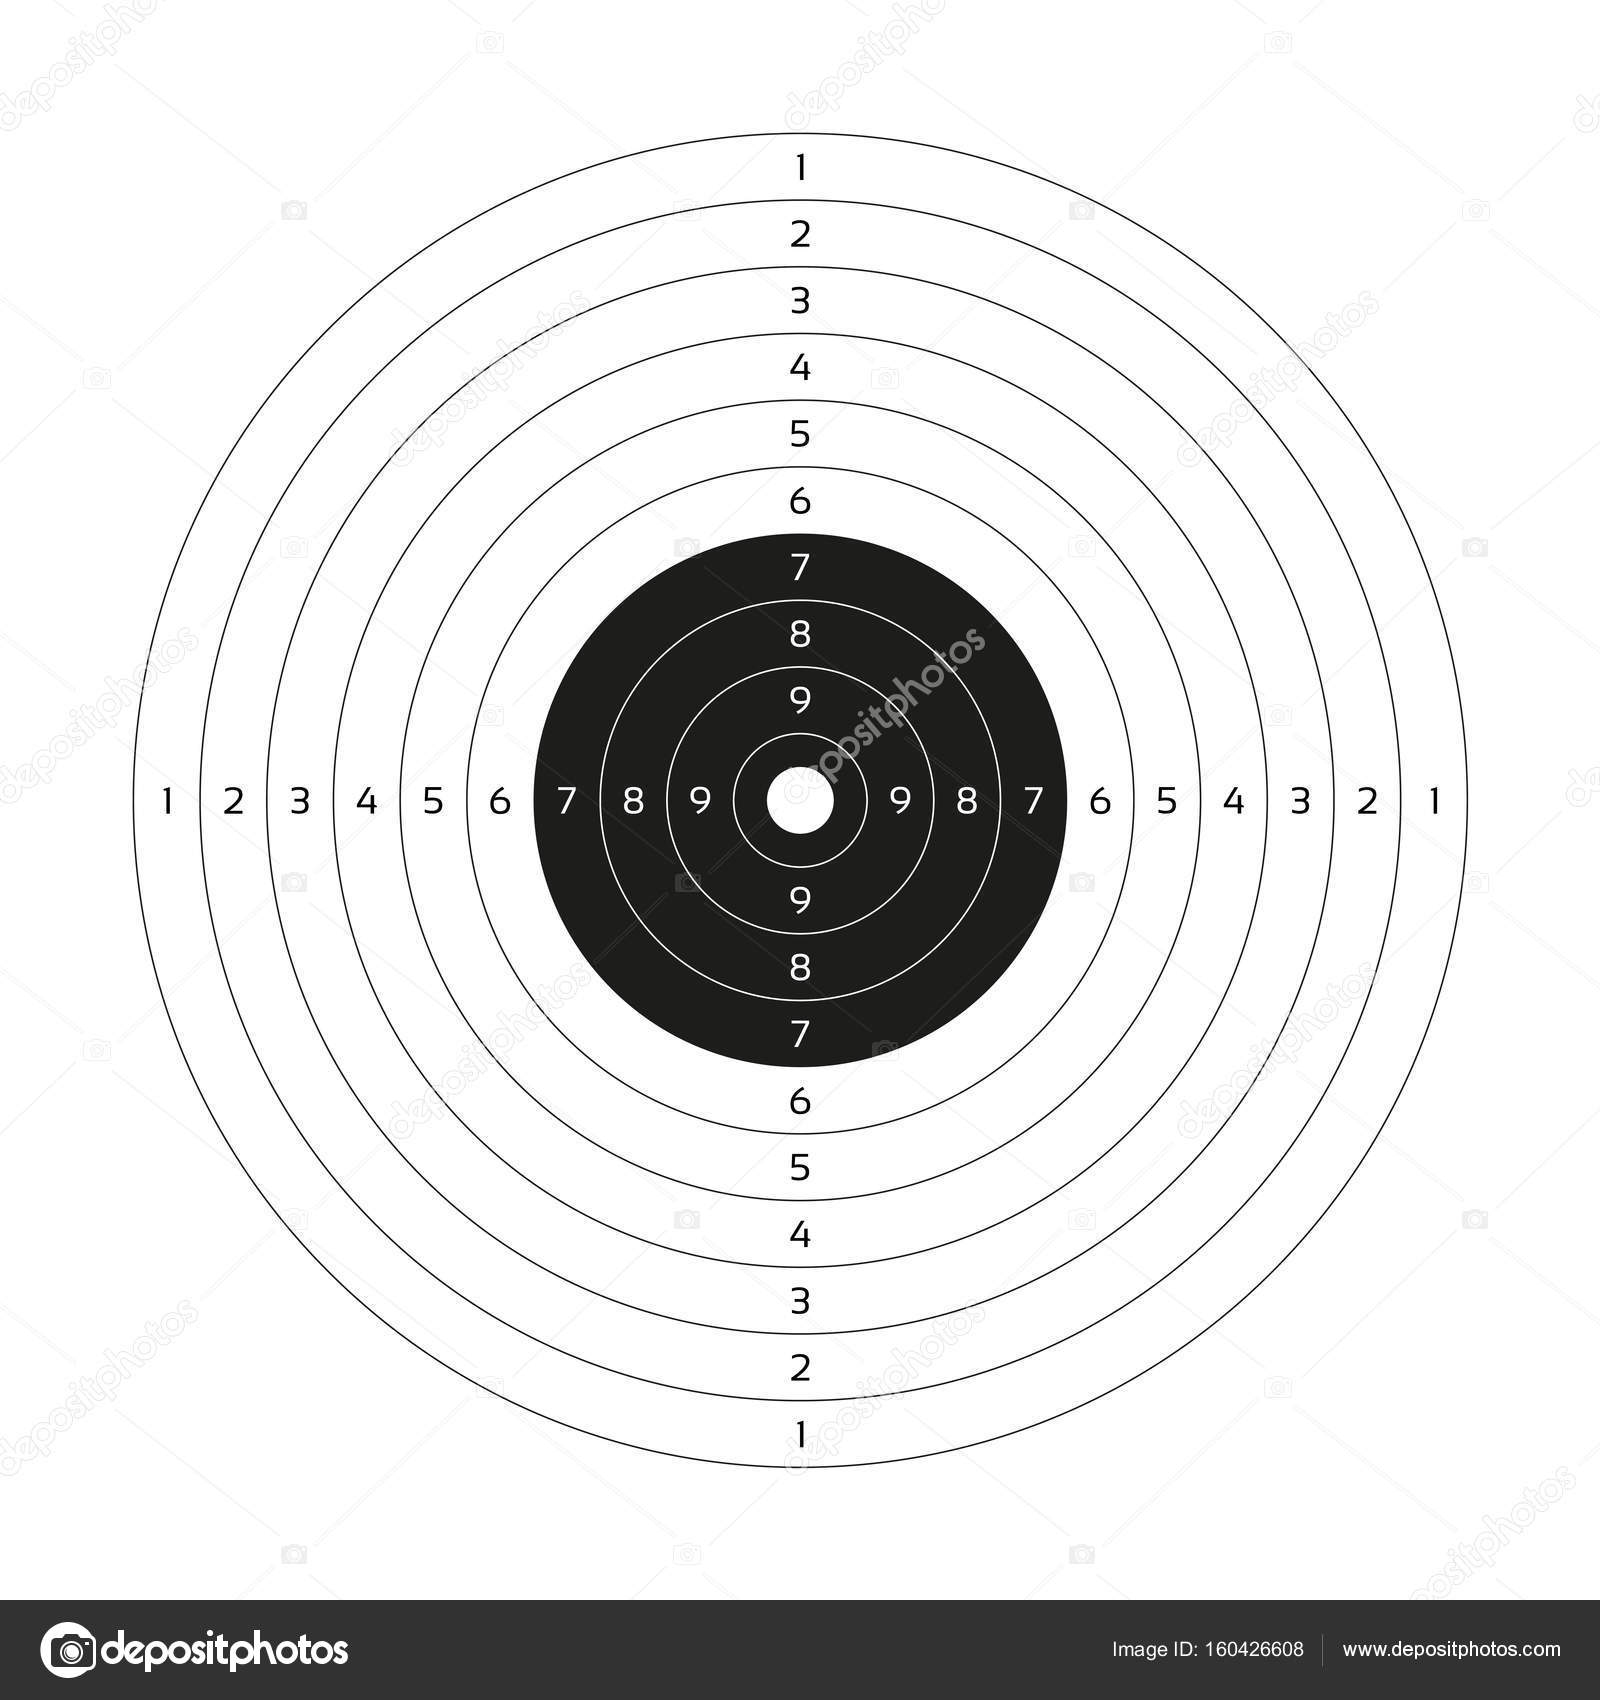 photograph regarding Printable Gun Stock Templates named Blank vector gun concentration, paper taking pictures concentrate, blank